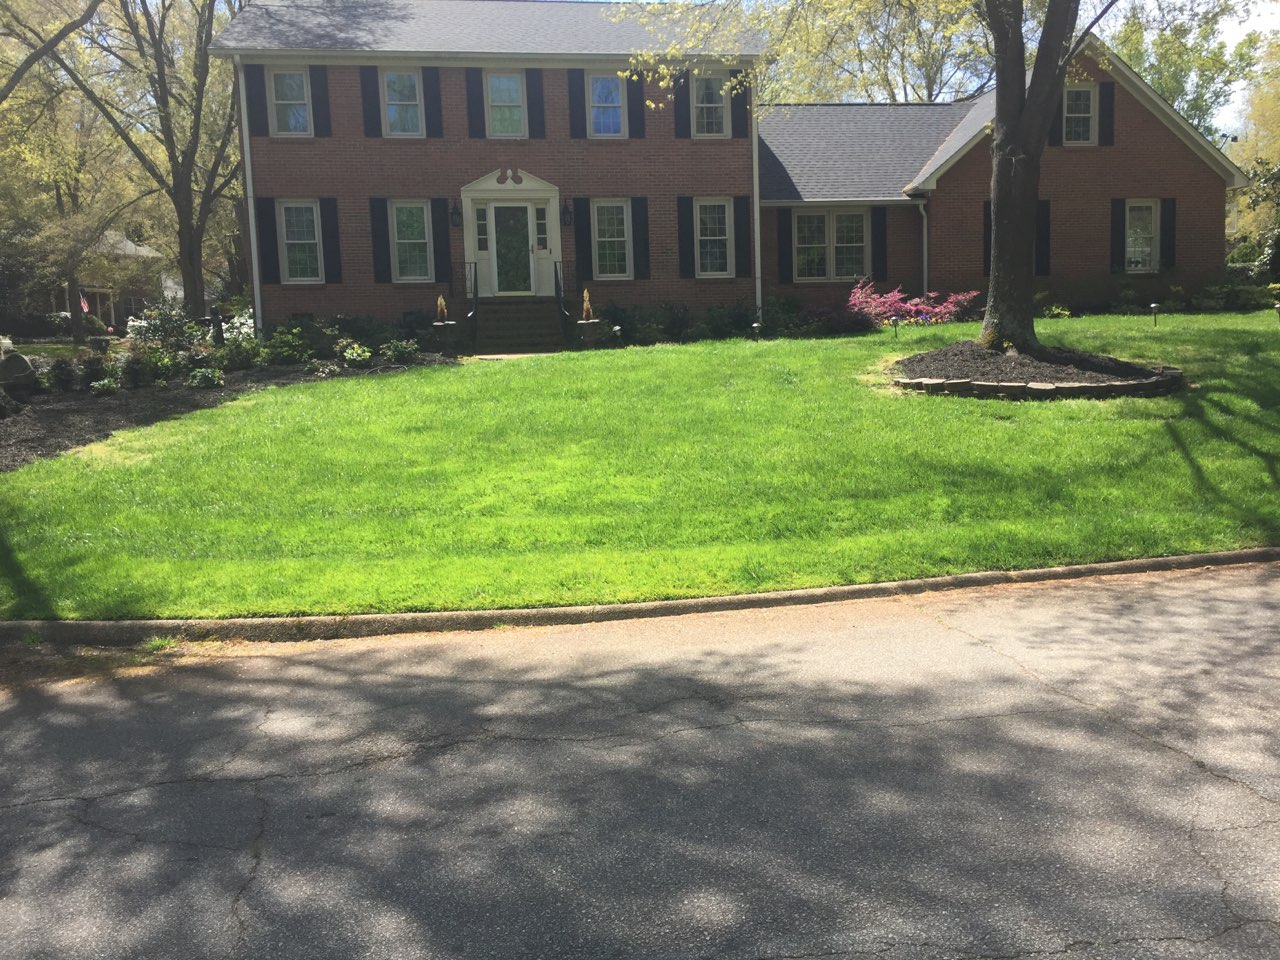 landscaping service in Greenville SC